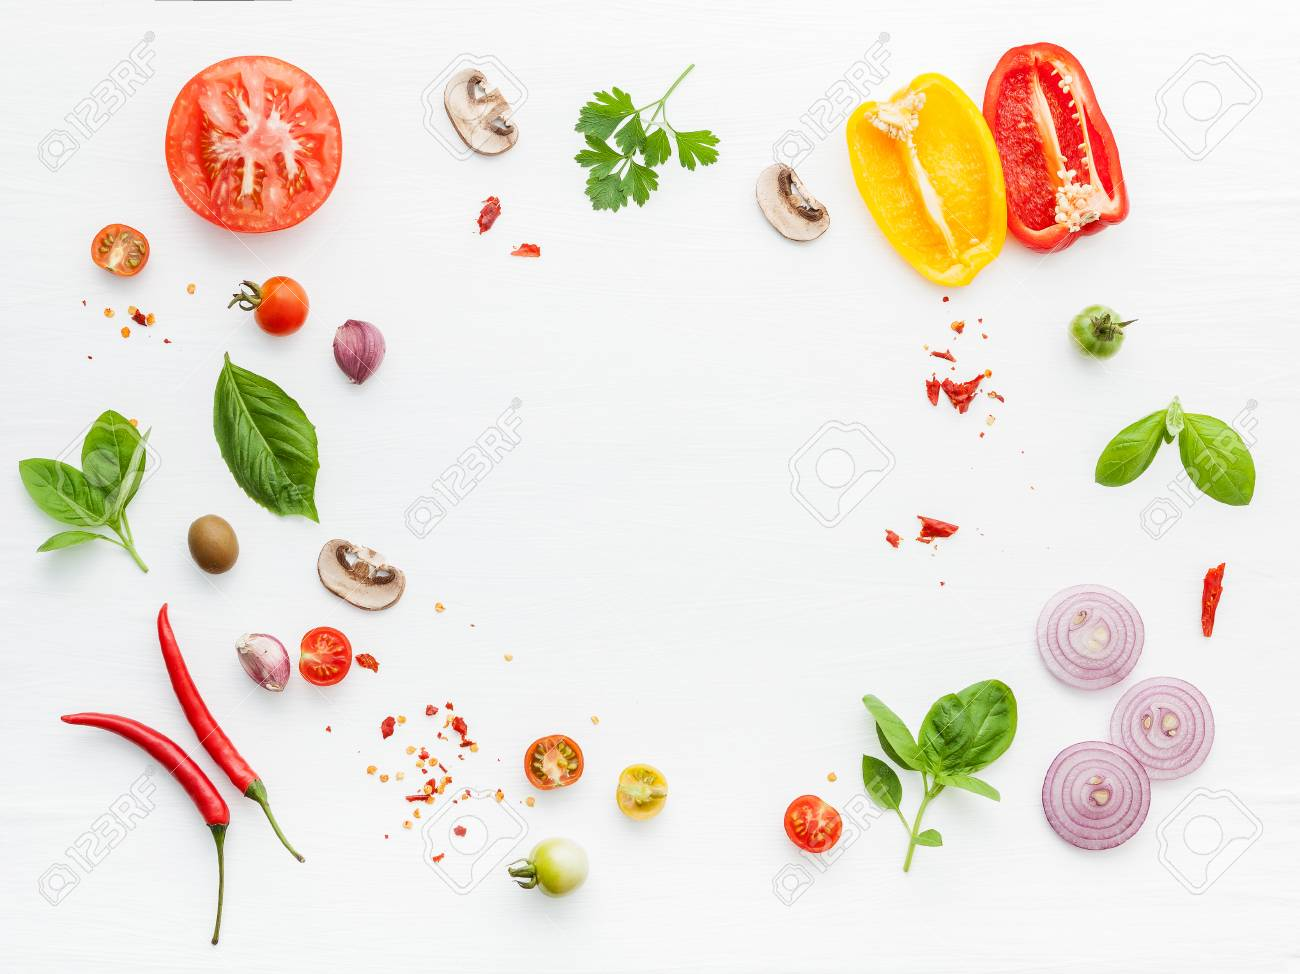 The ingredients for homemade pizza on white wooden background. - 108911799